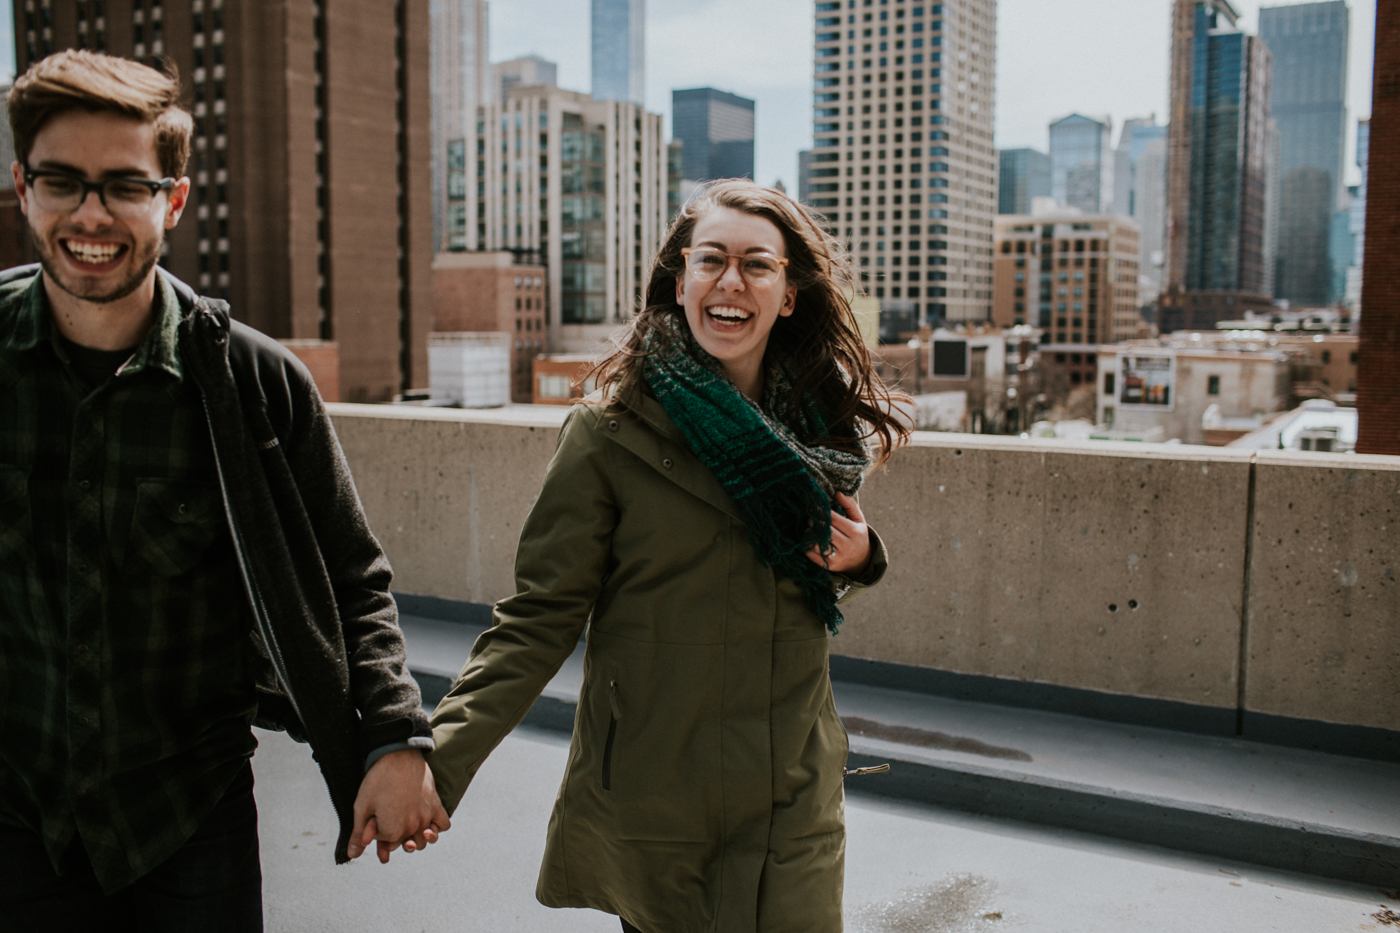 chicago wedding and engagement photographer grace e jones photography